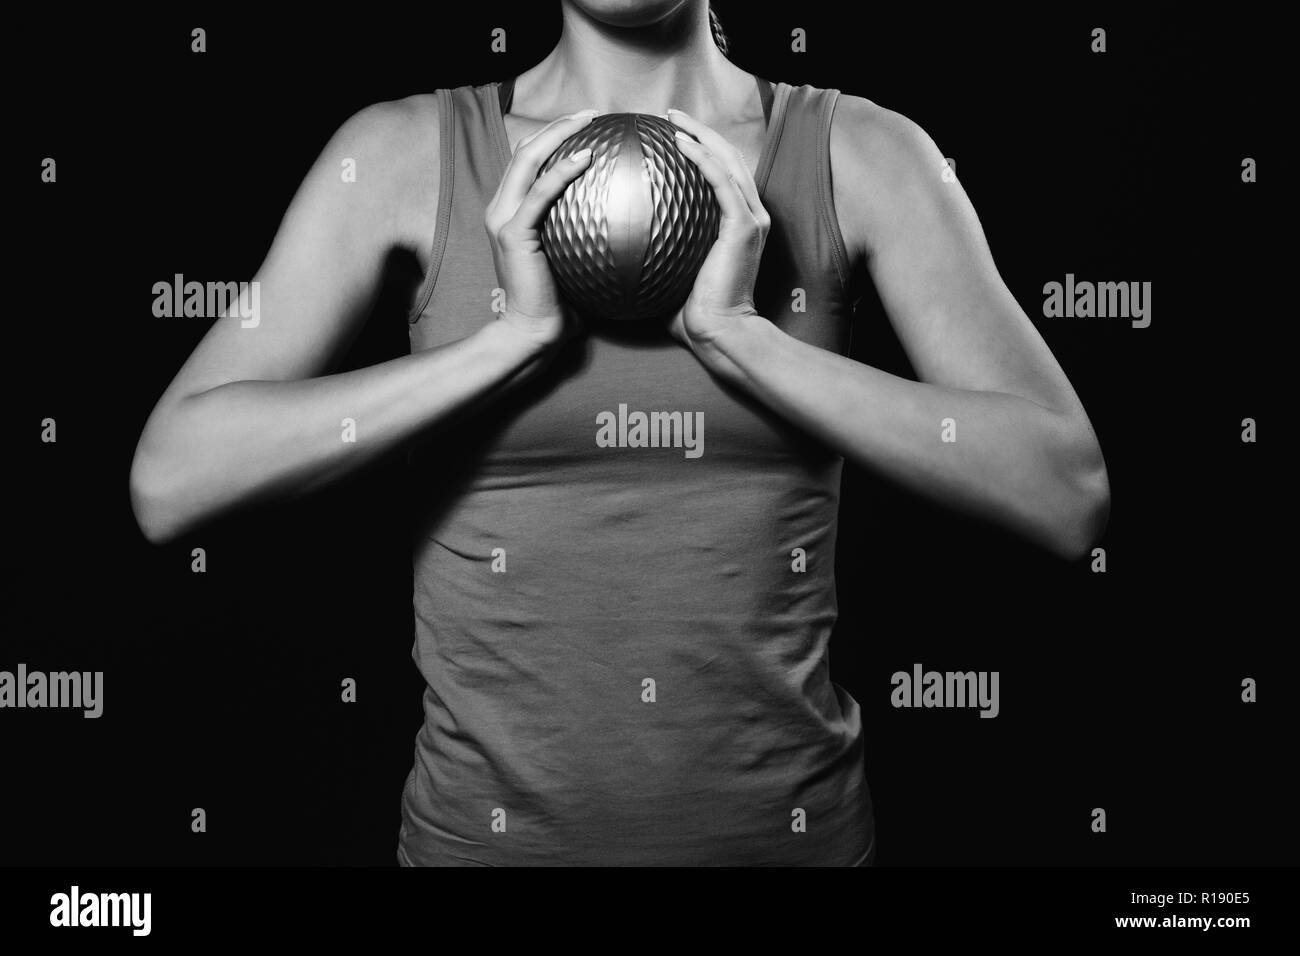 Woman is exercising with medicine ball. - Stock Image